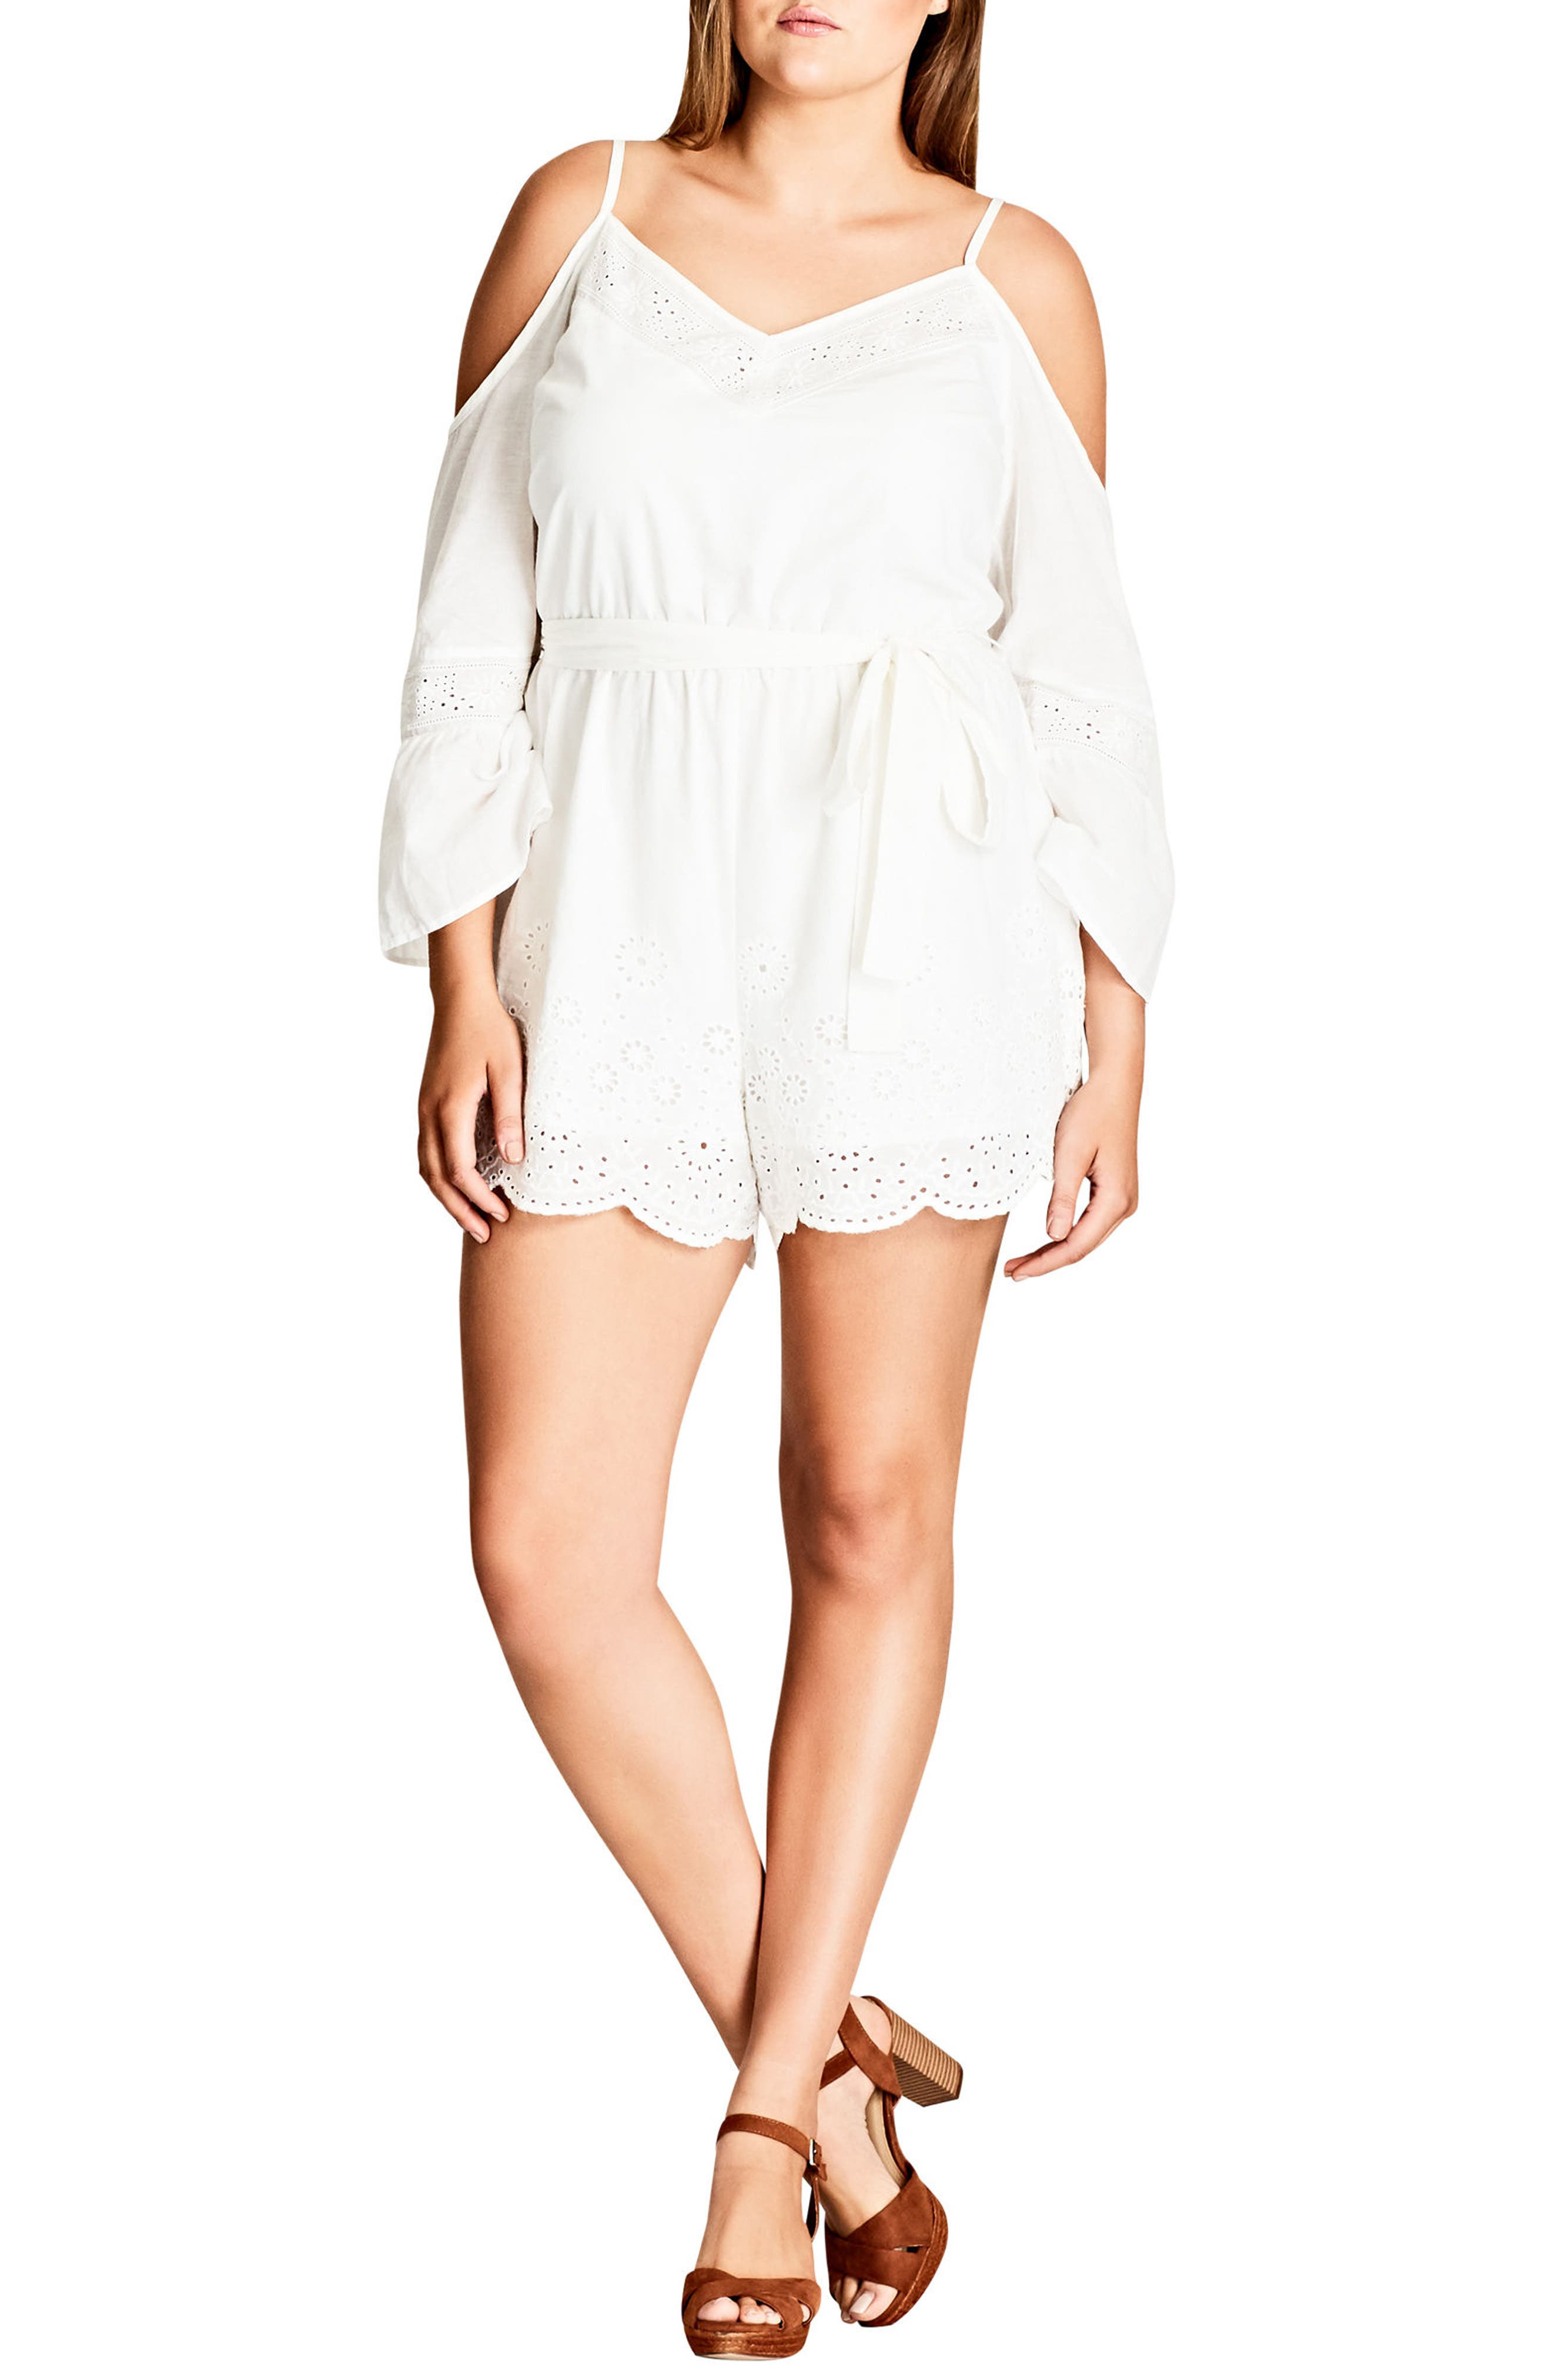 Innocence Cotton Off the Shoulder Romper,                             Main thumbnail 1, color,